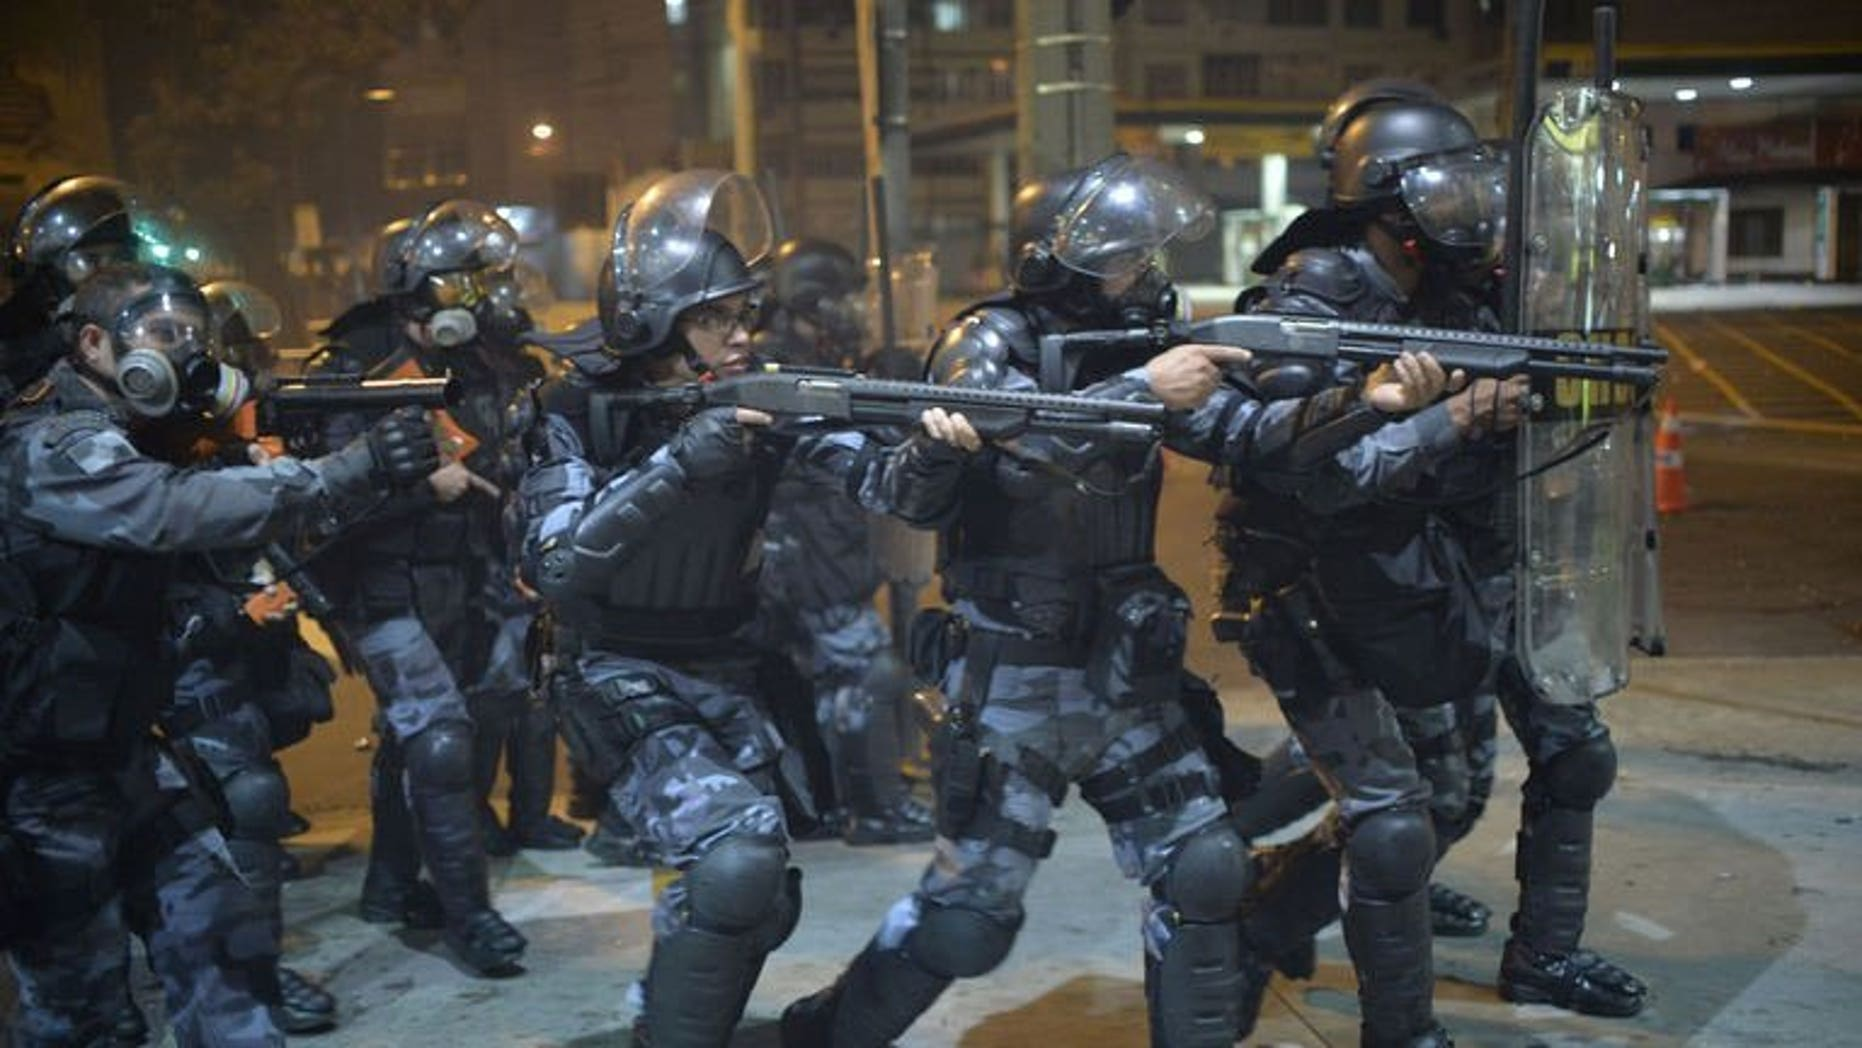 Anti riot police charge during a protest in a street near the Maracana stadium of Rio de Janeiro on June 30, 2013. Protesters clashed with police near Rio's iconic Maracana stadium Sunday, only minutes before the start of the Brazil-Spain final of the Confederations Cup, AFP correspondents reported.